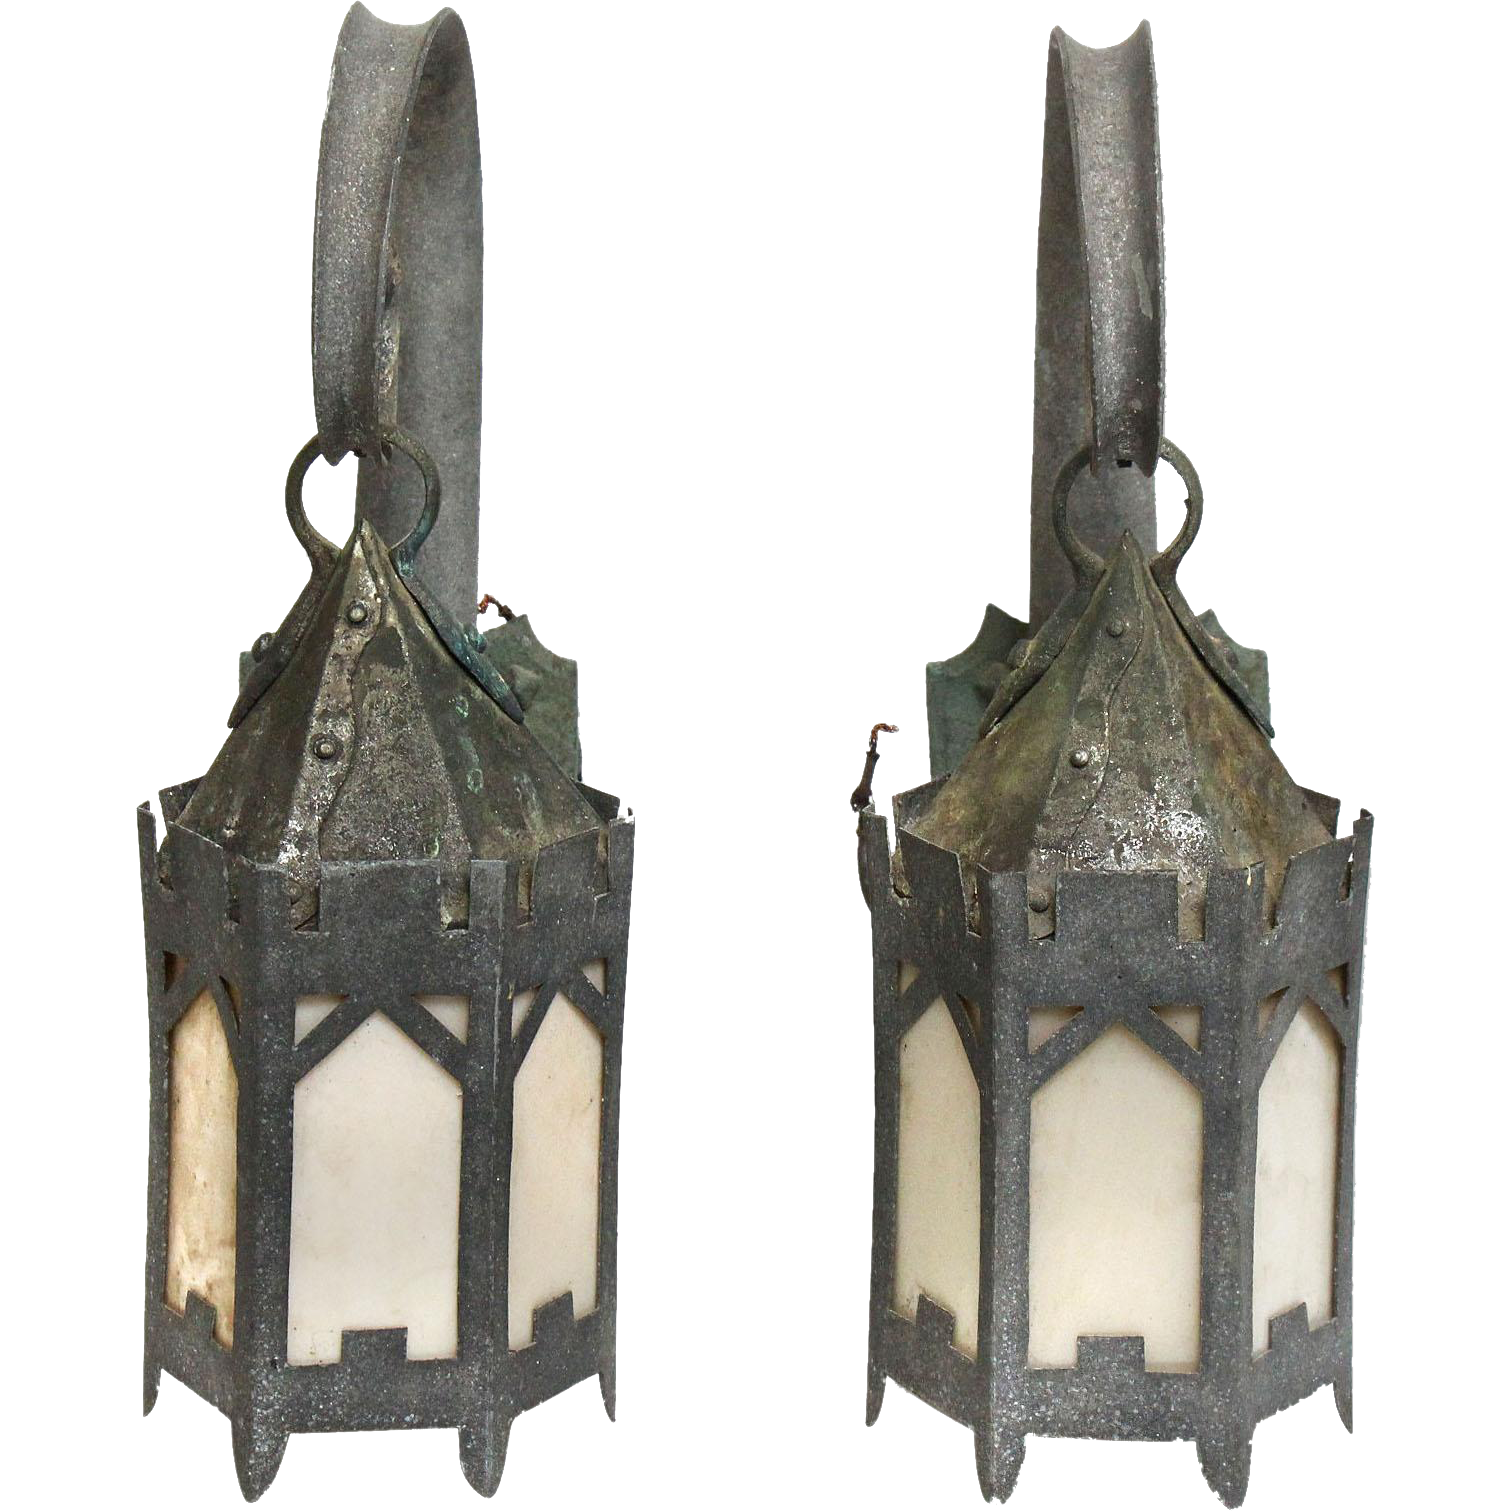 Pair of lantern sconces with brackets